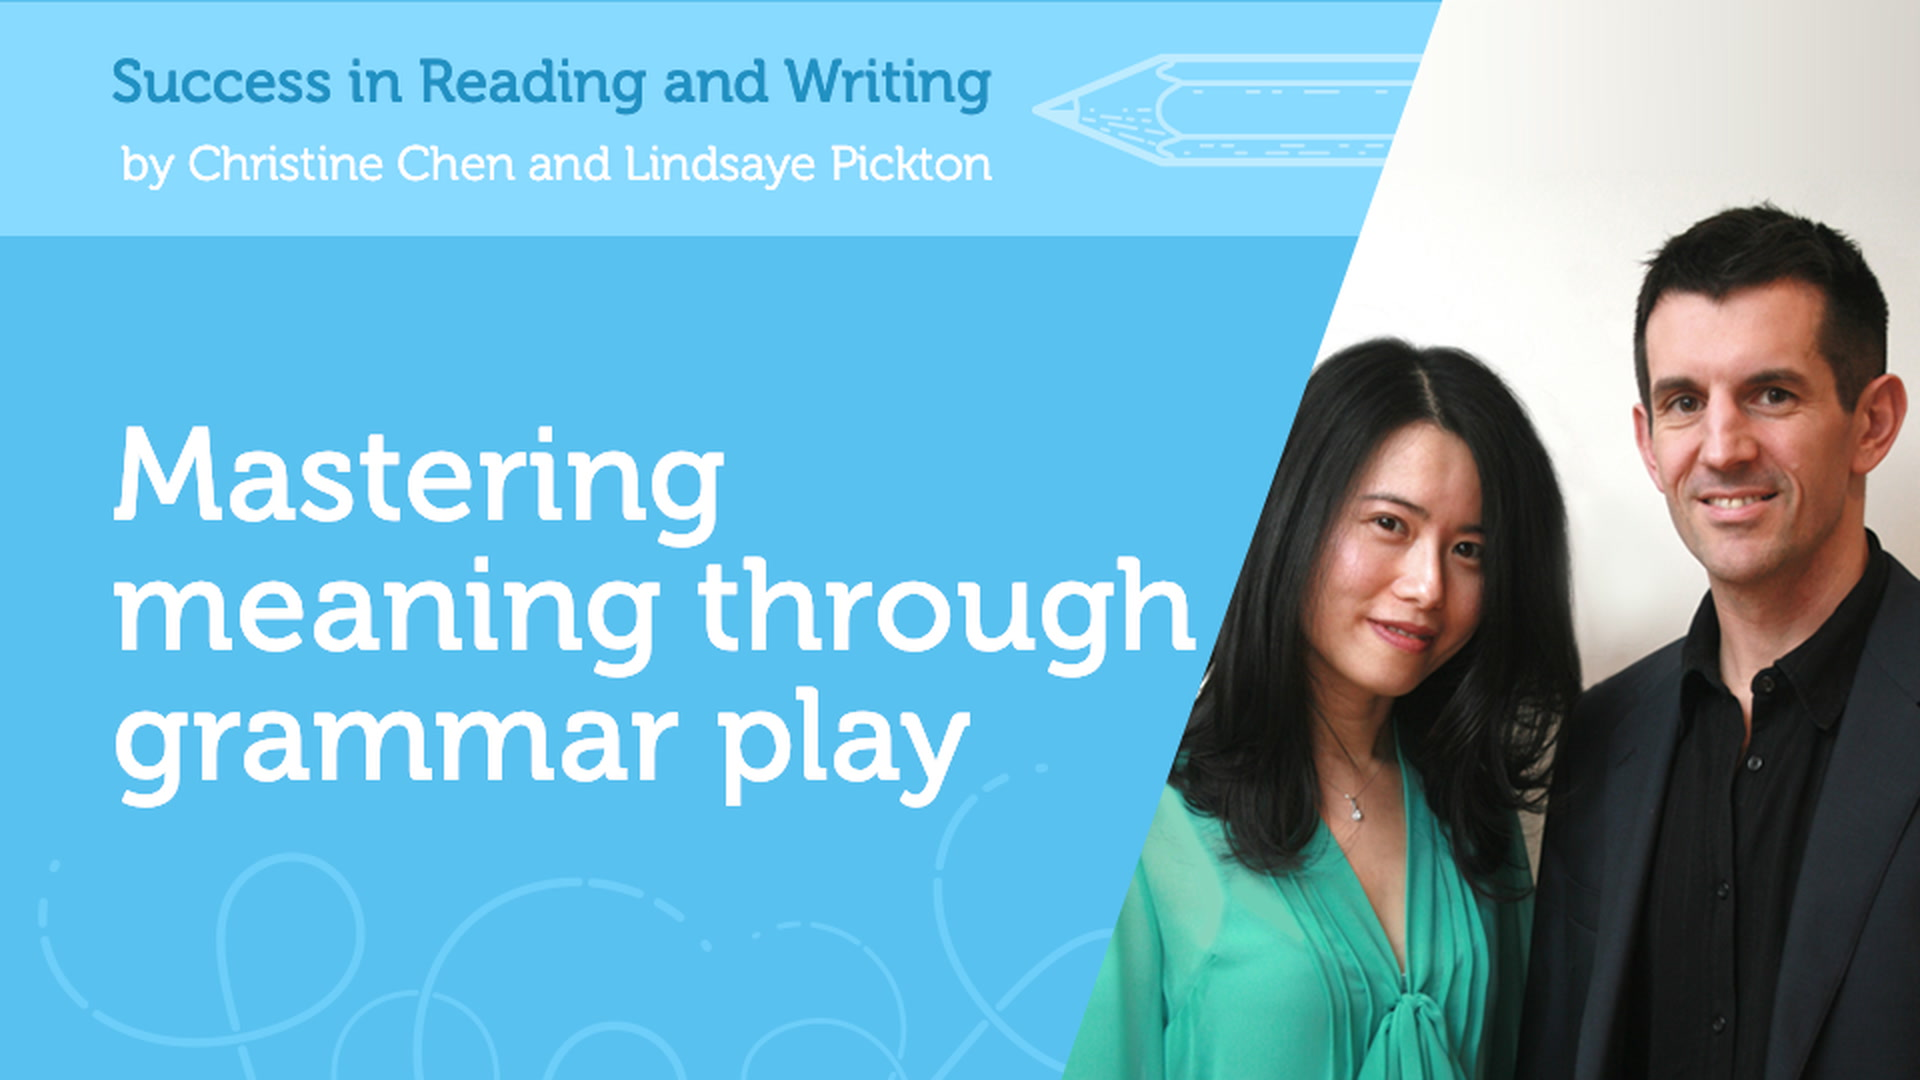 Mastering meaning through grammar play